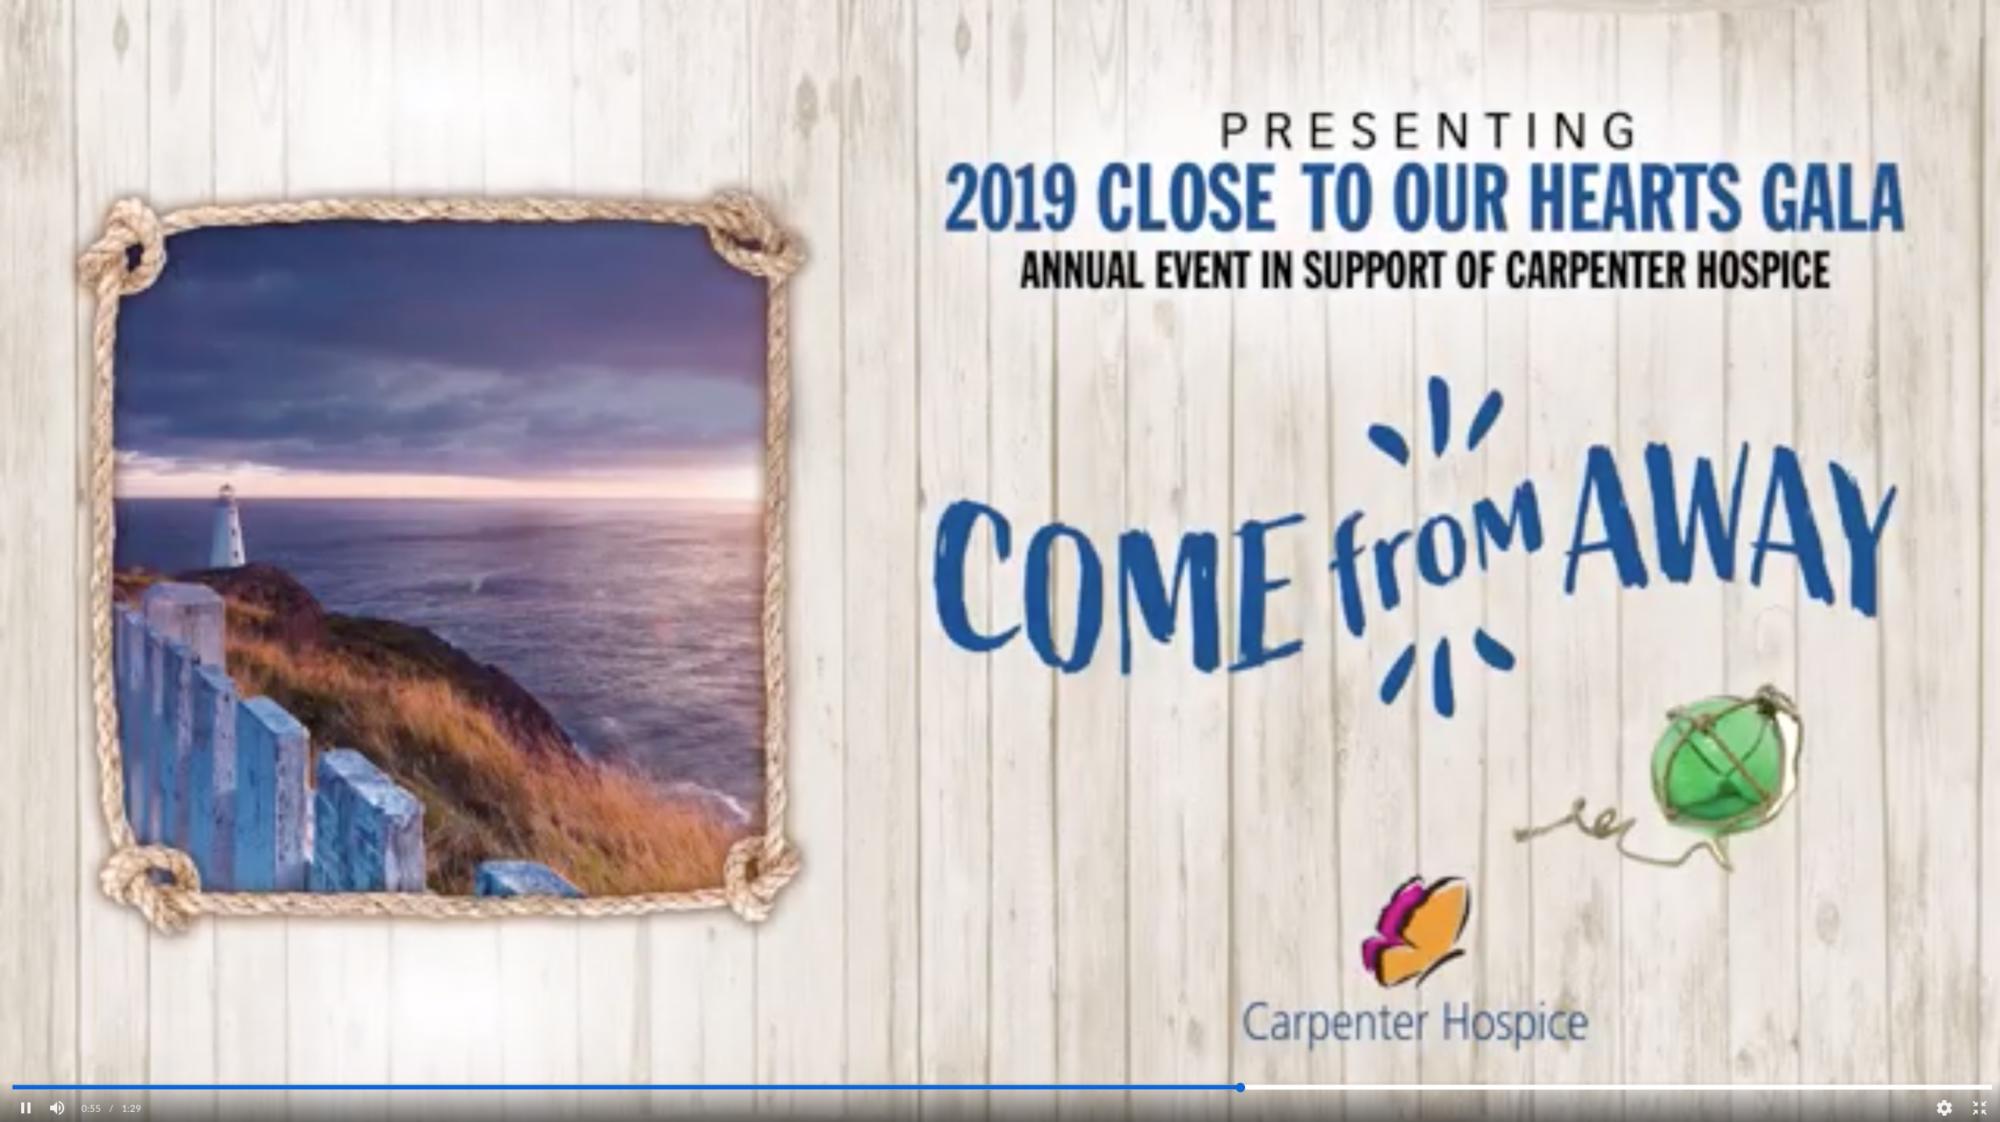 Poster: Presenting 2019 Close to Our Hearts Gala. Annual event in support of Carpenter Hospice. Come from Away.